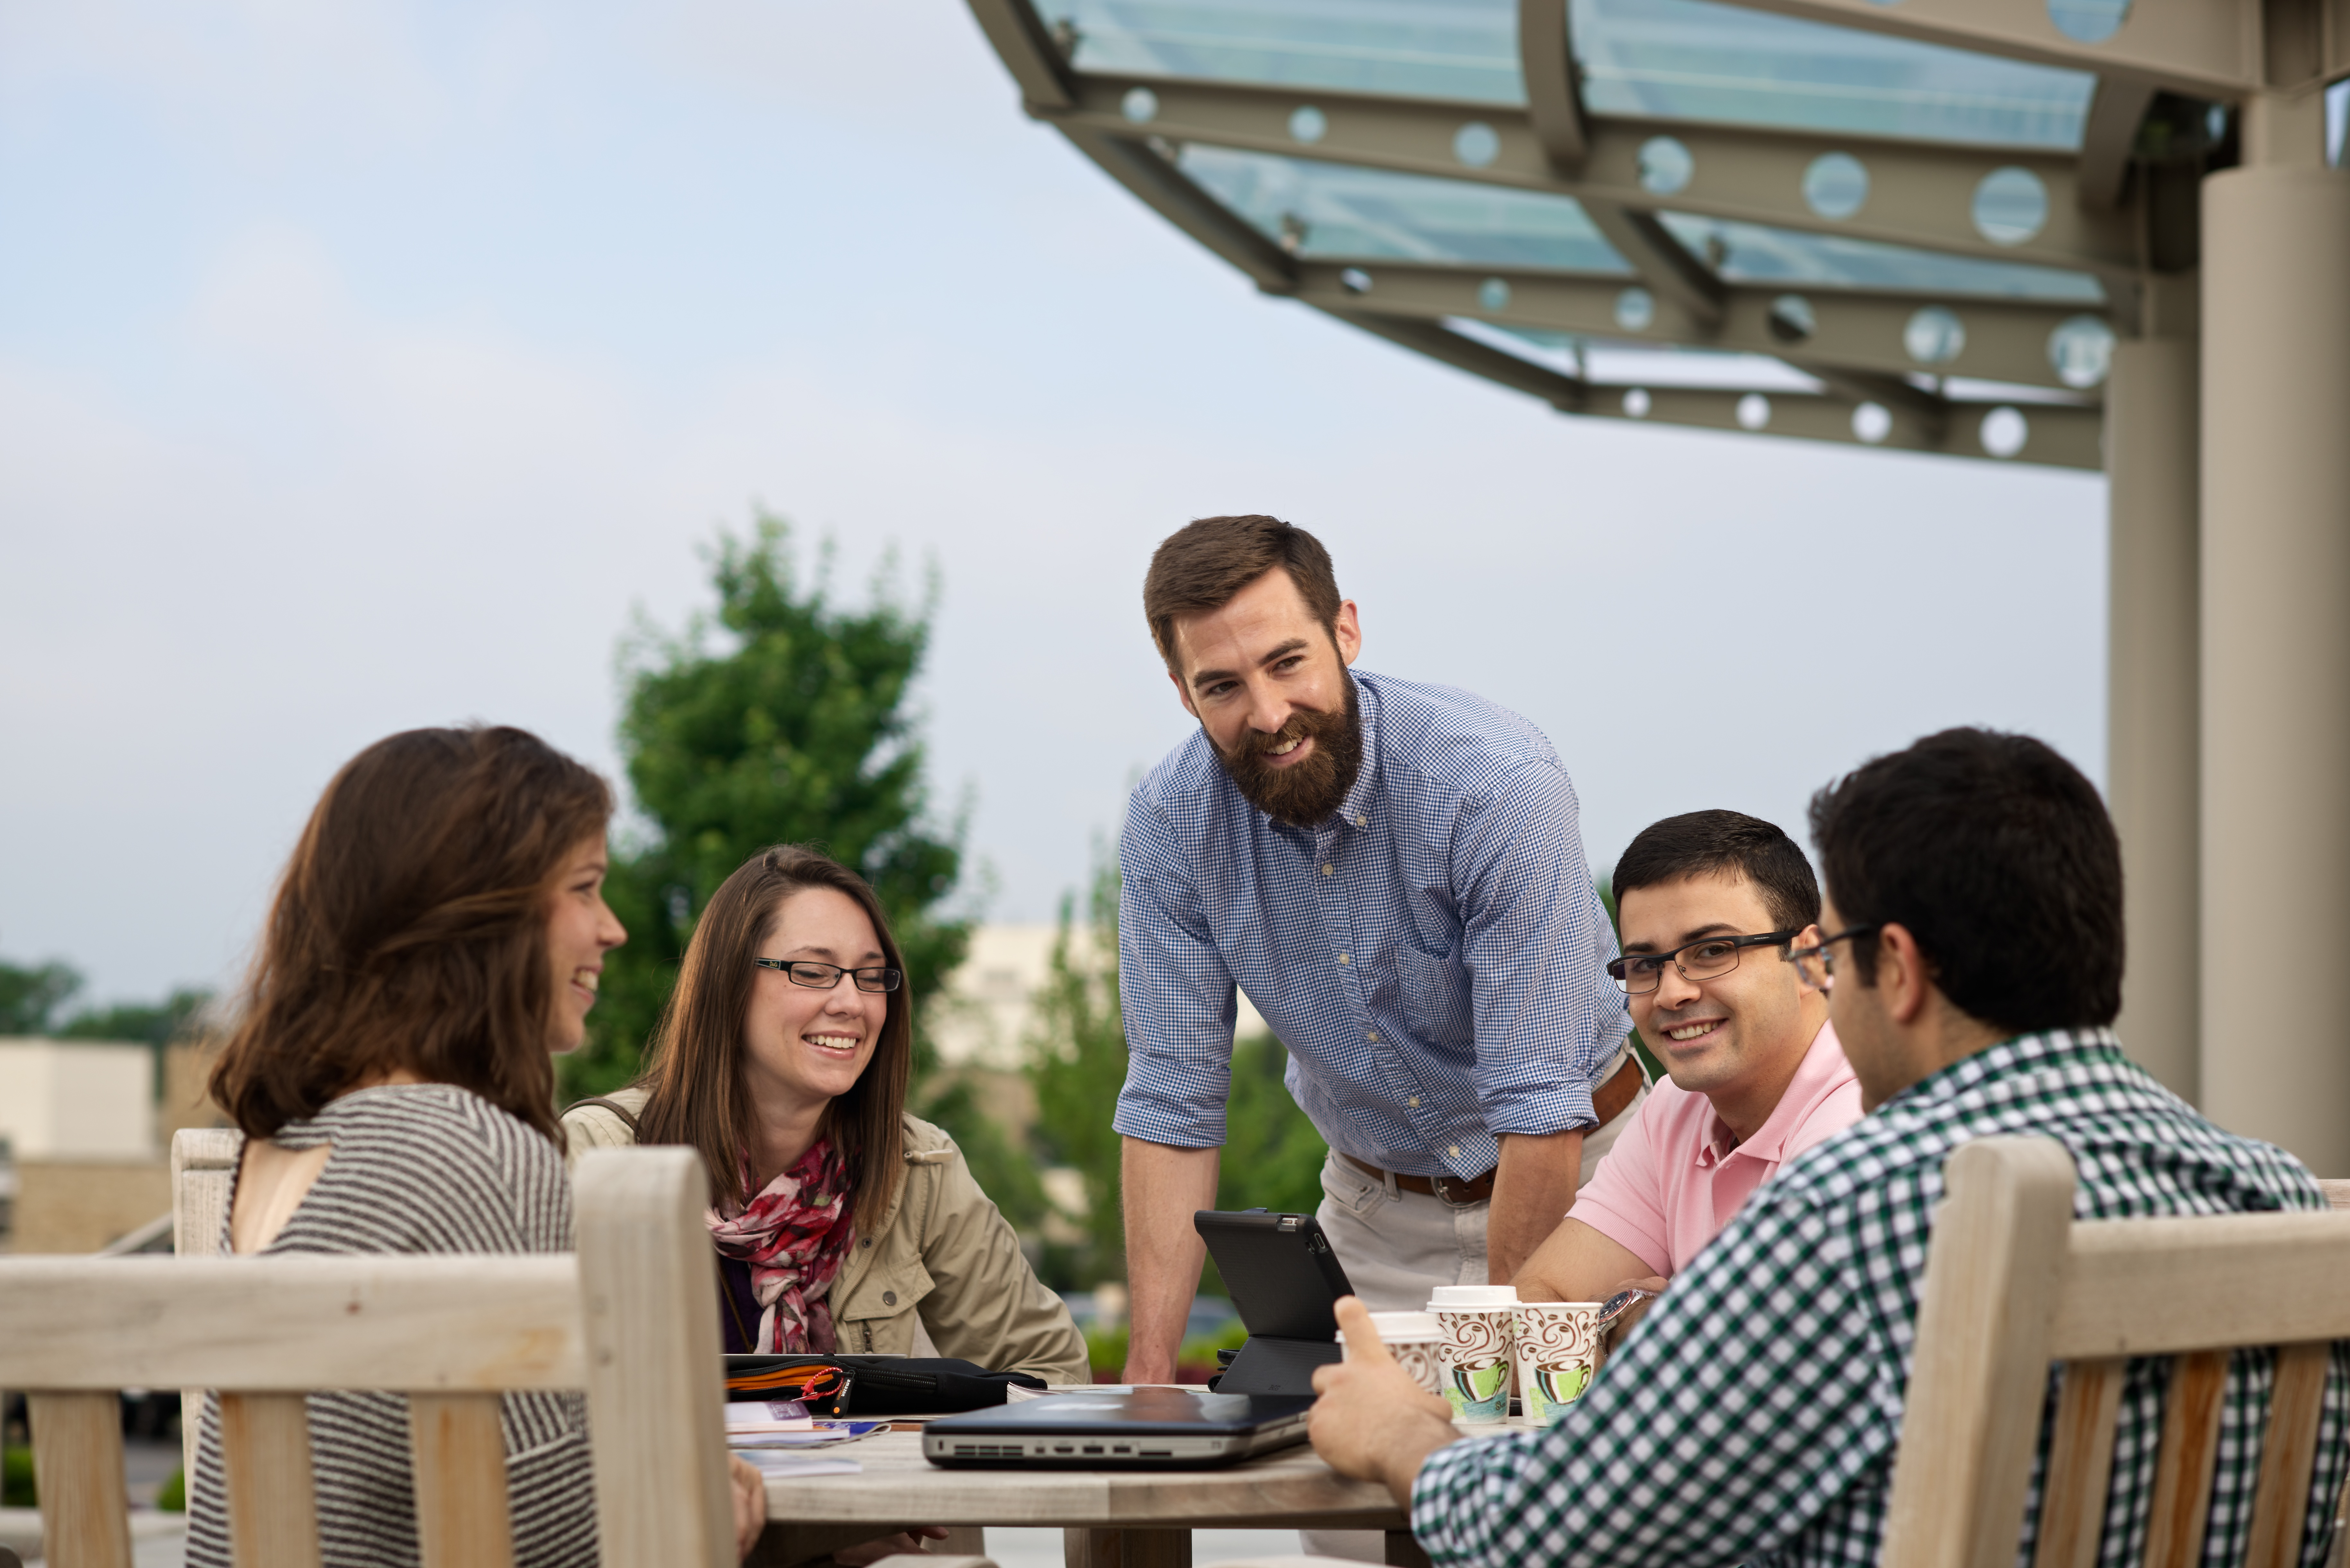 Employees collaborating around a table on the OU-Tulsa campus.